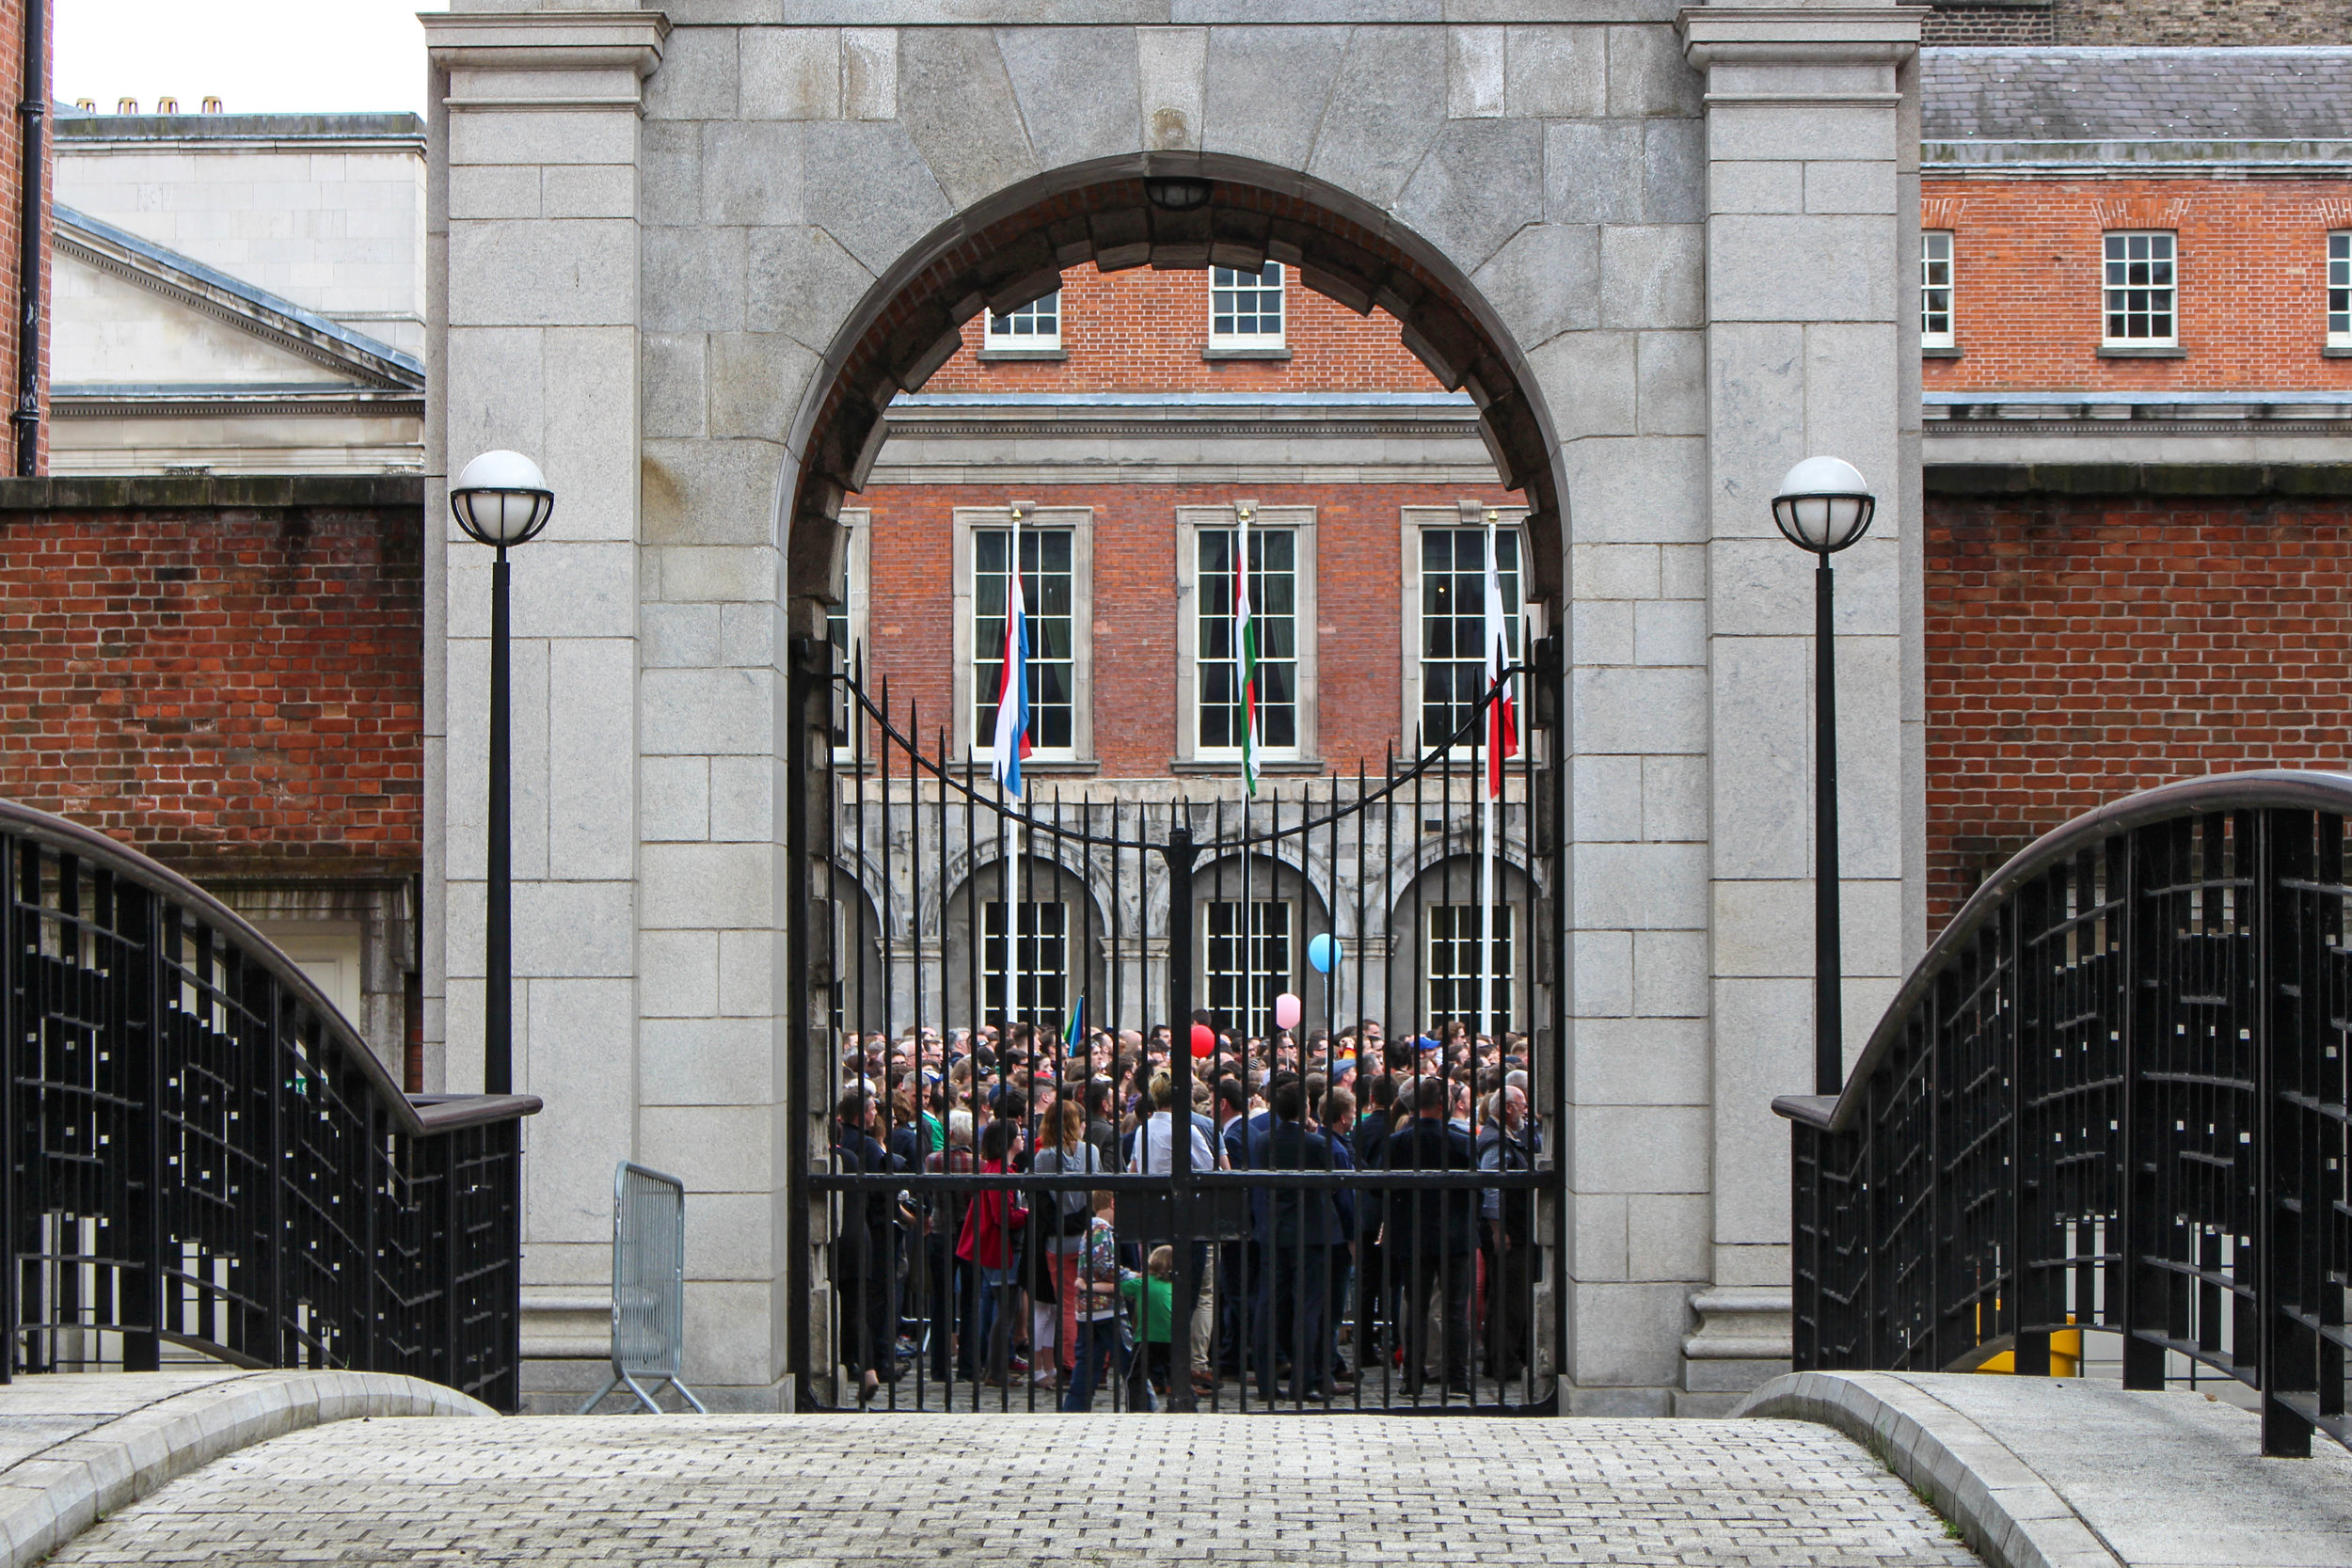 Crowds gathered inside the gates of Dublin Castle on May 23 as ballot boxes were emptied and votes were counted. Photograph by James Gabriel Martin